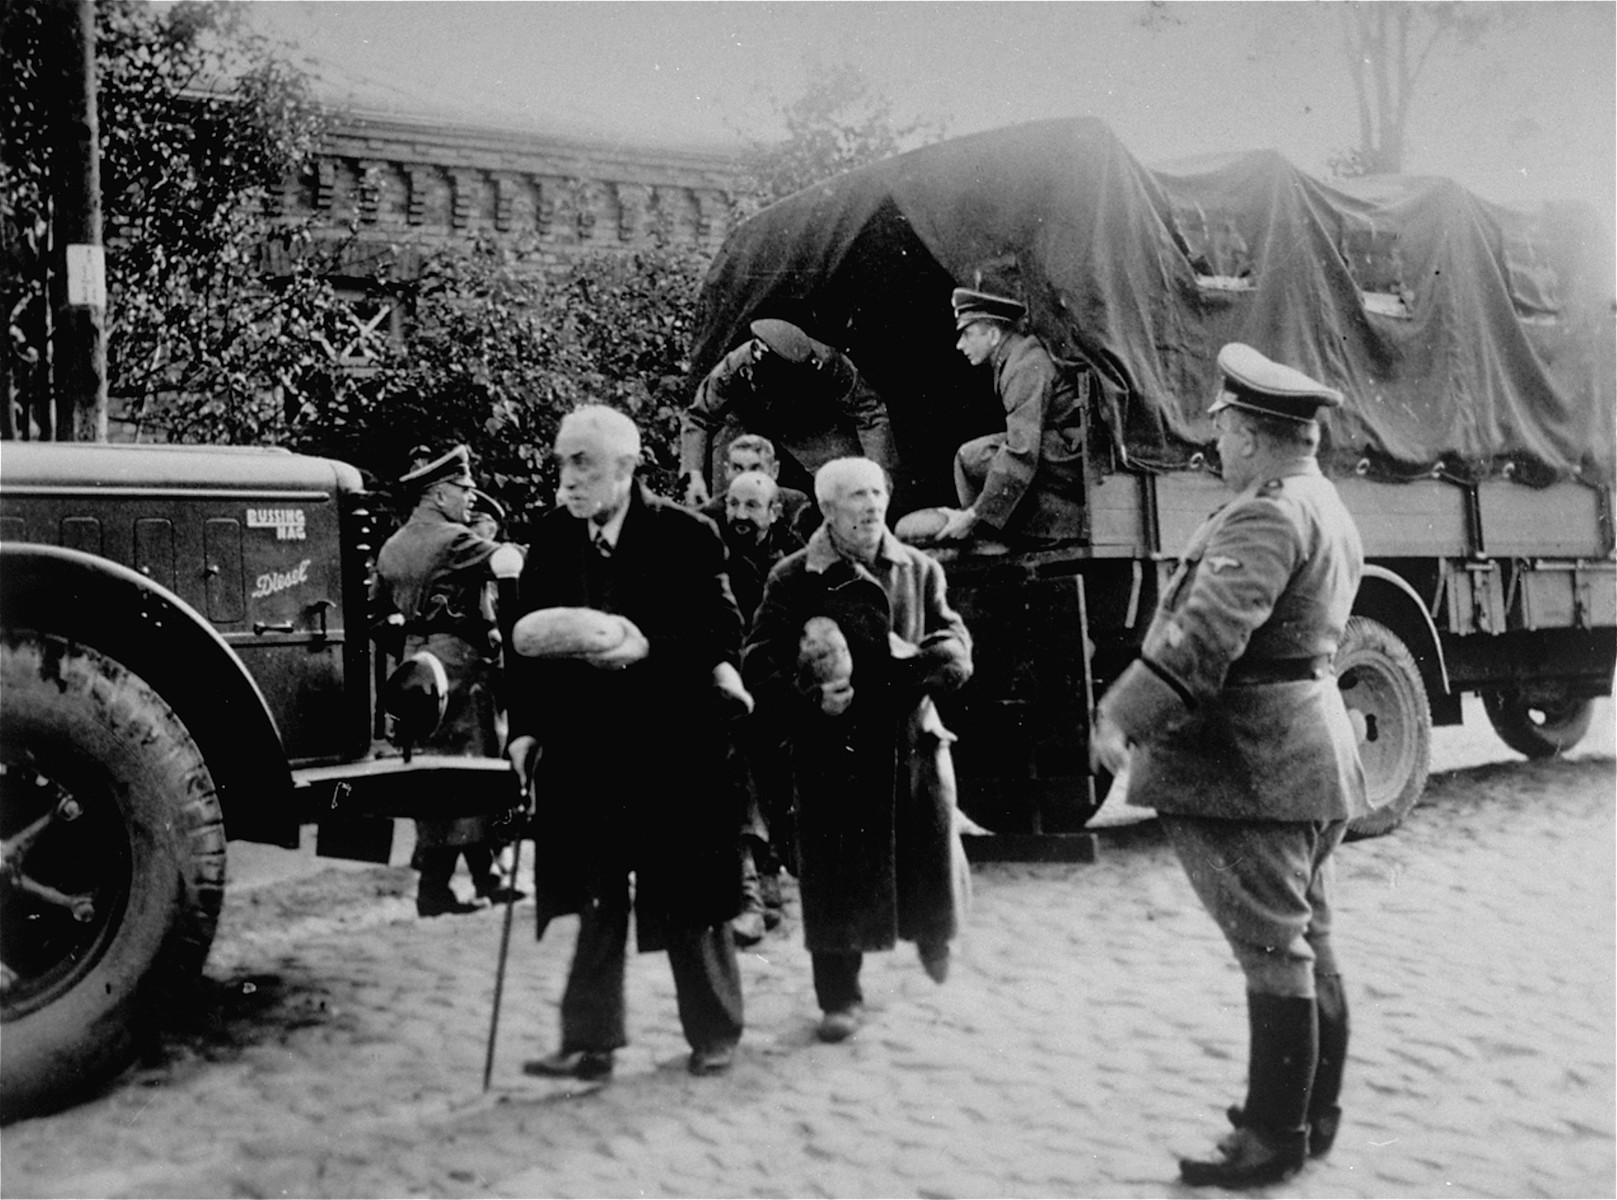 Jewish men from Plonsk receive loaves of bread that Germans distribute from the back of a truck.